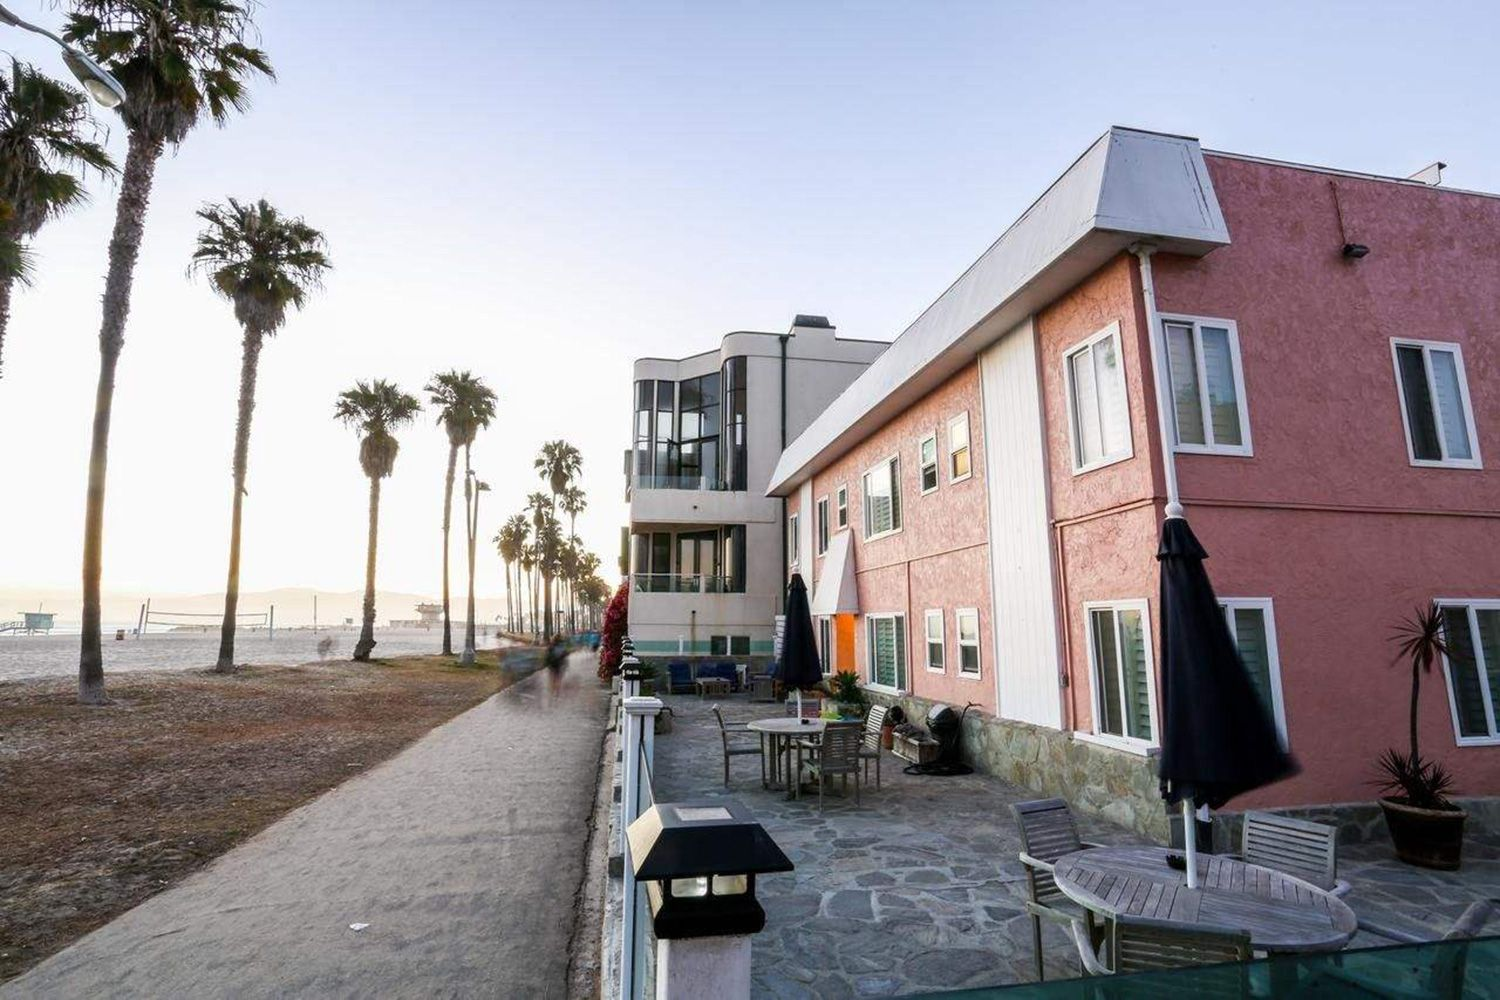 The 10 Best Budget Los Angeles Hotels of 2018